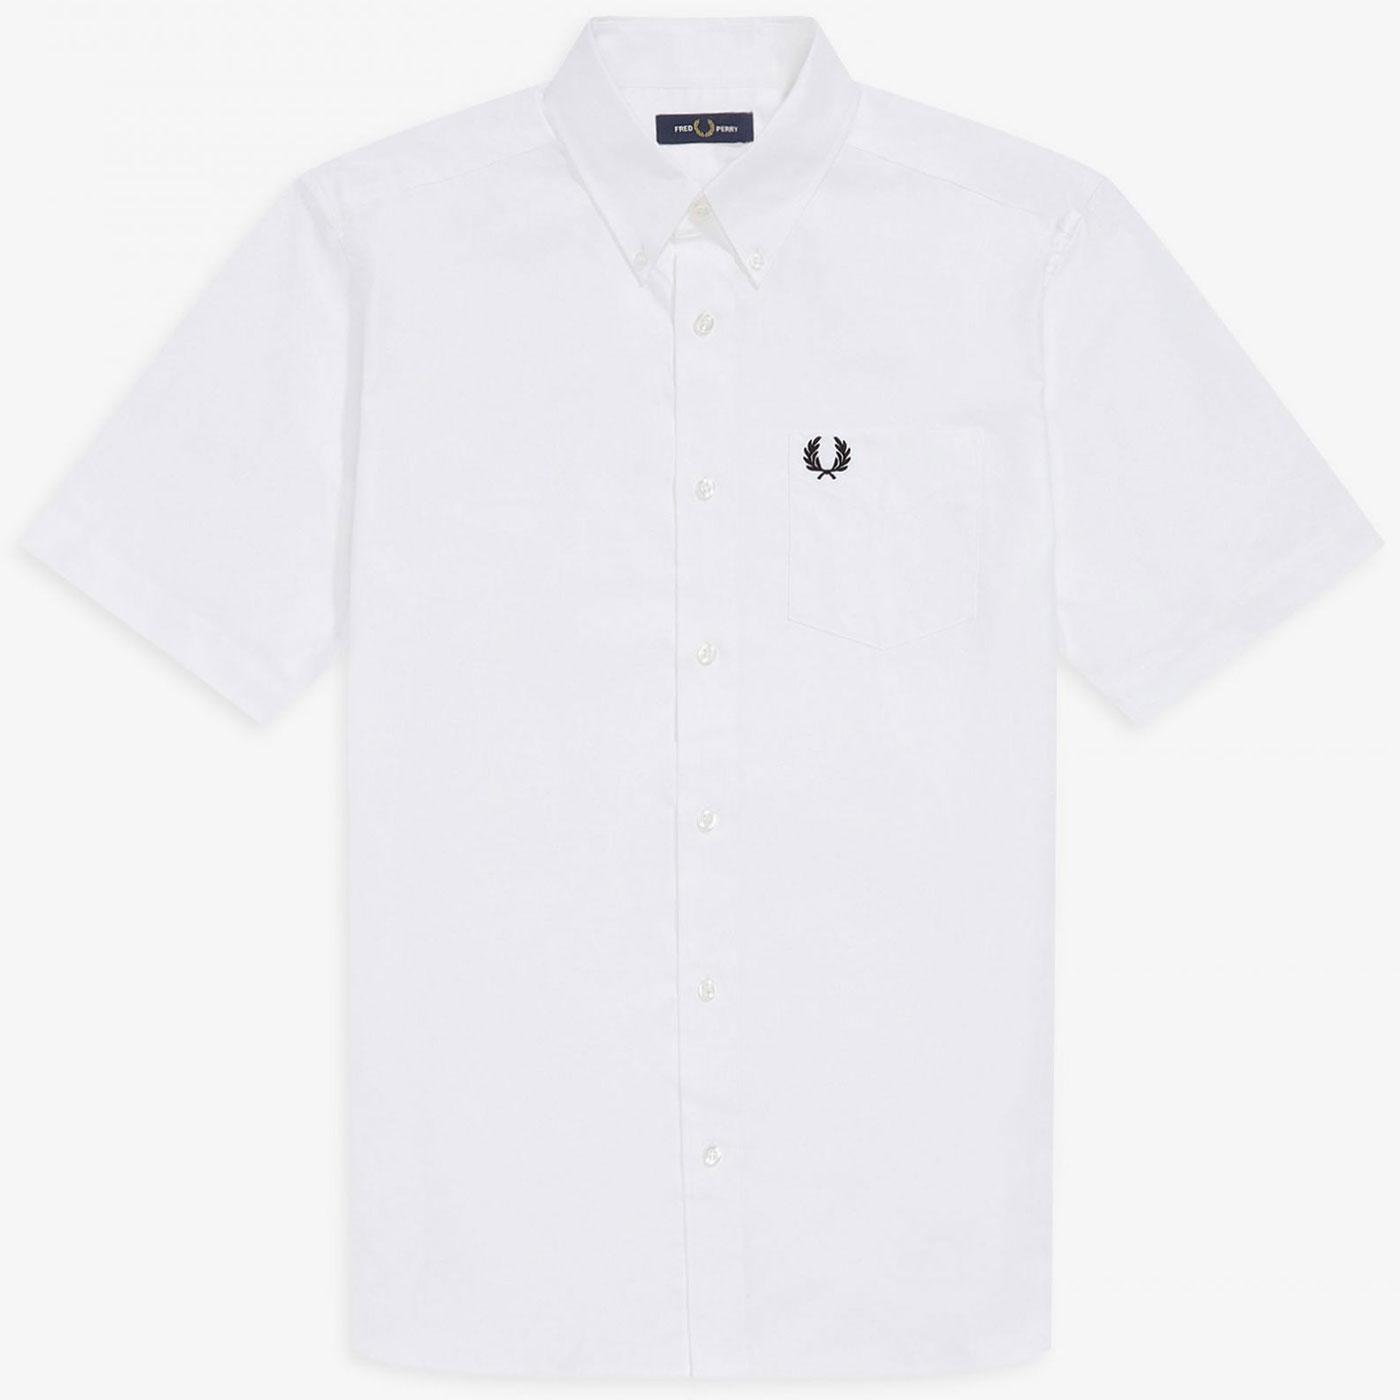 FRED PERRY Retro Short Sleeve Oxford Shirt - White